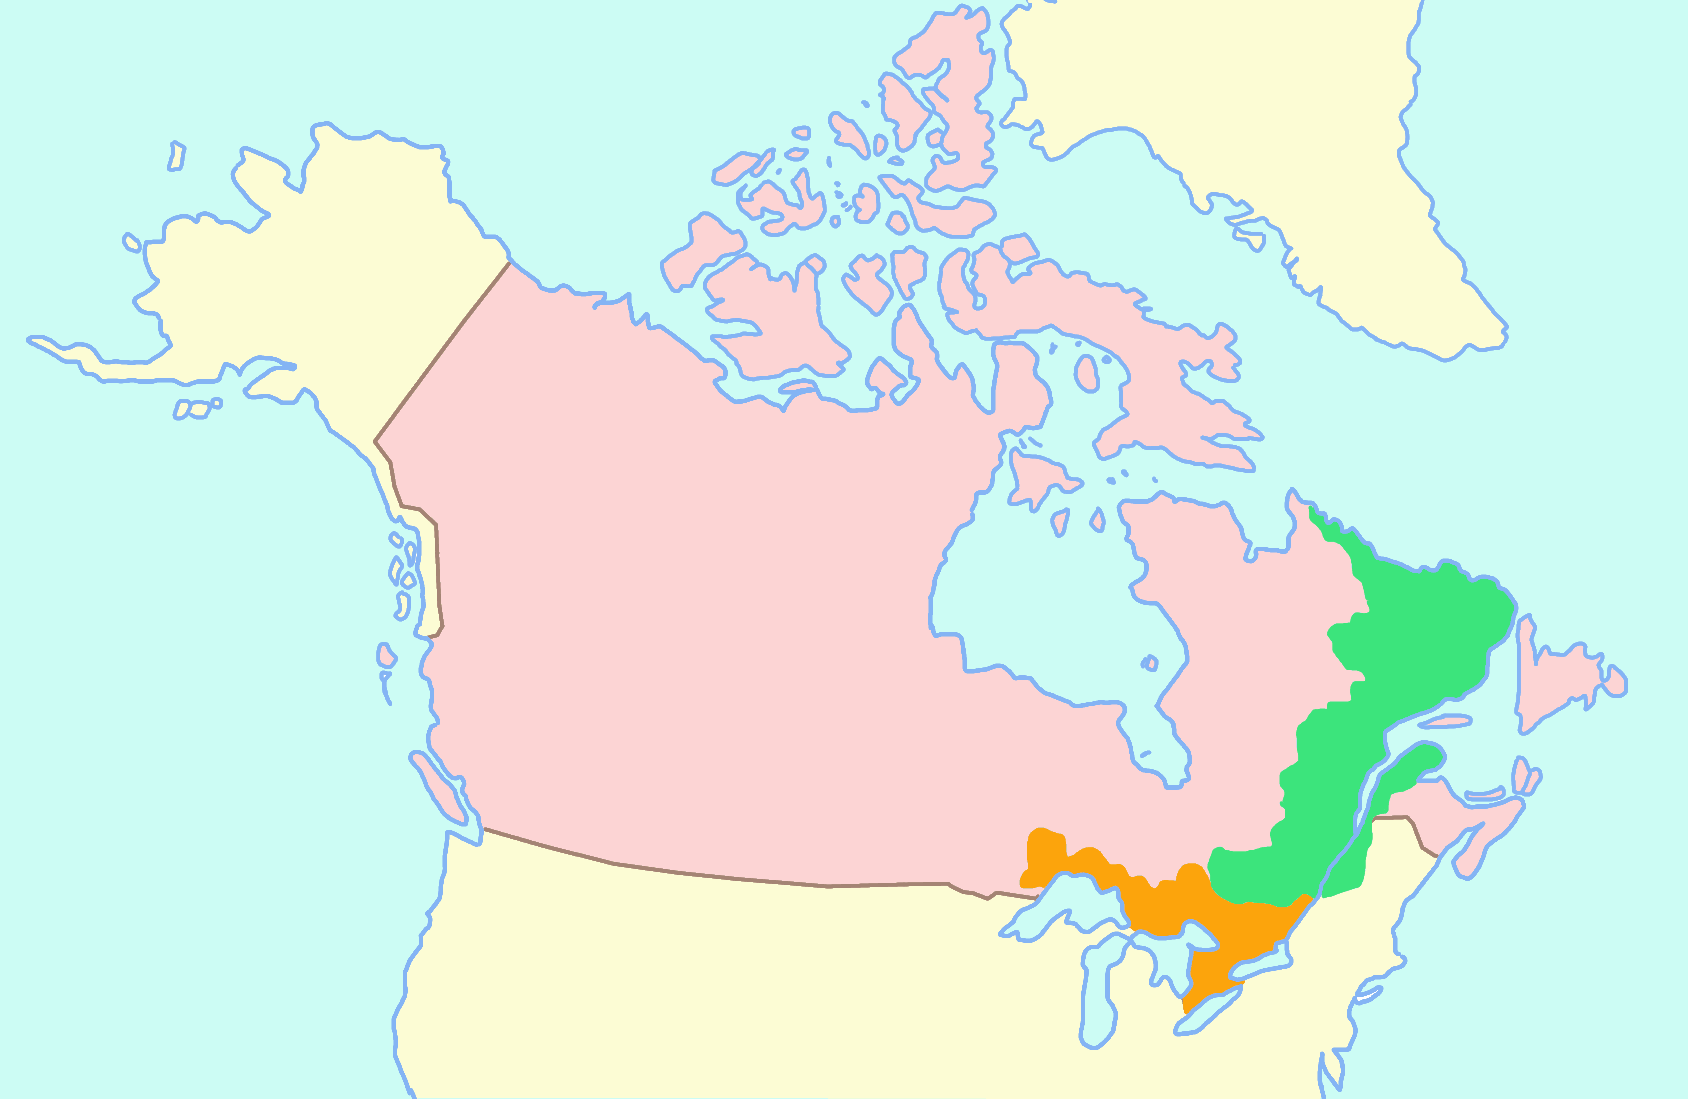 Canada_upper_lower_map.png